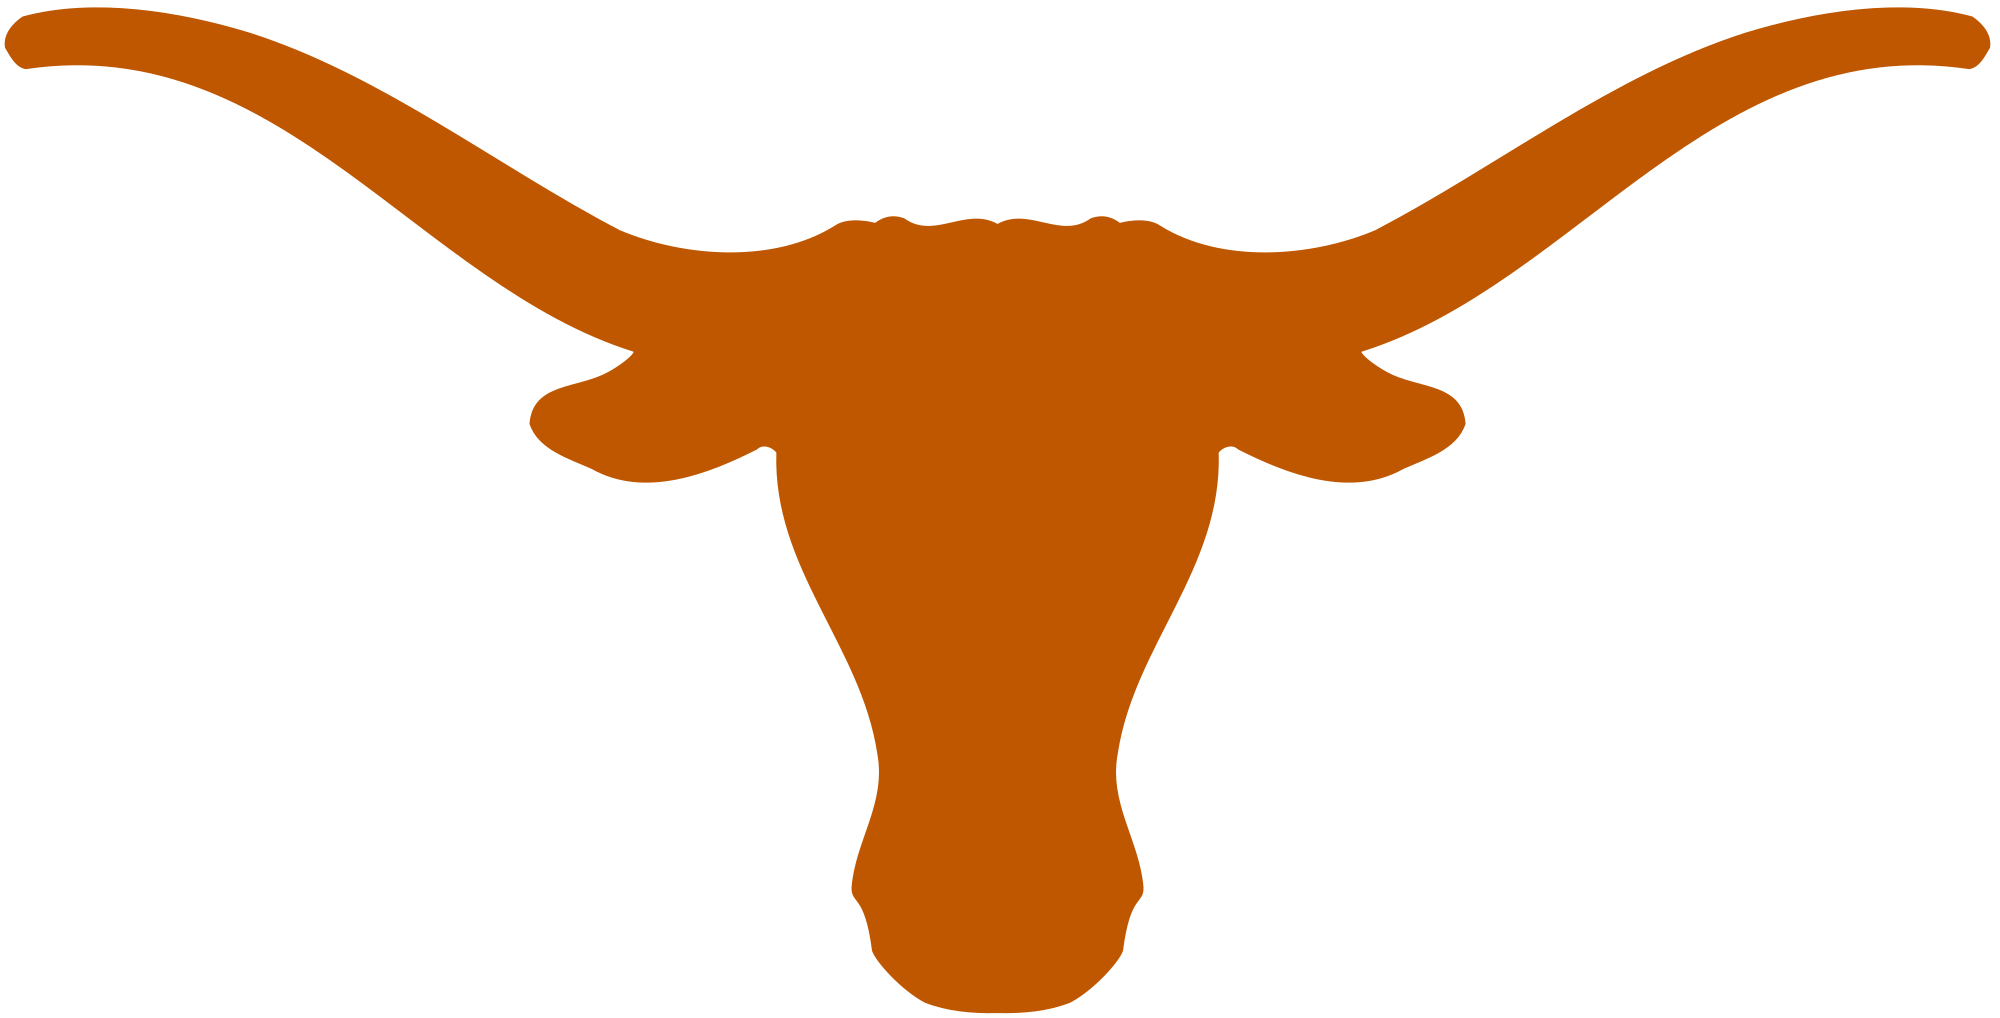 Longhorn Cattle svg #17, Download drawings